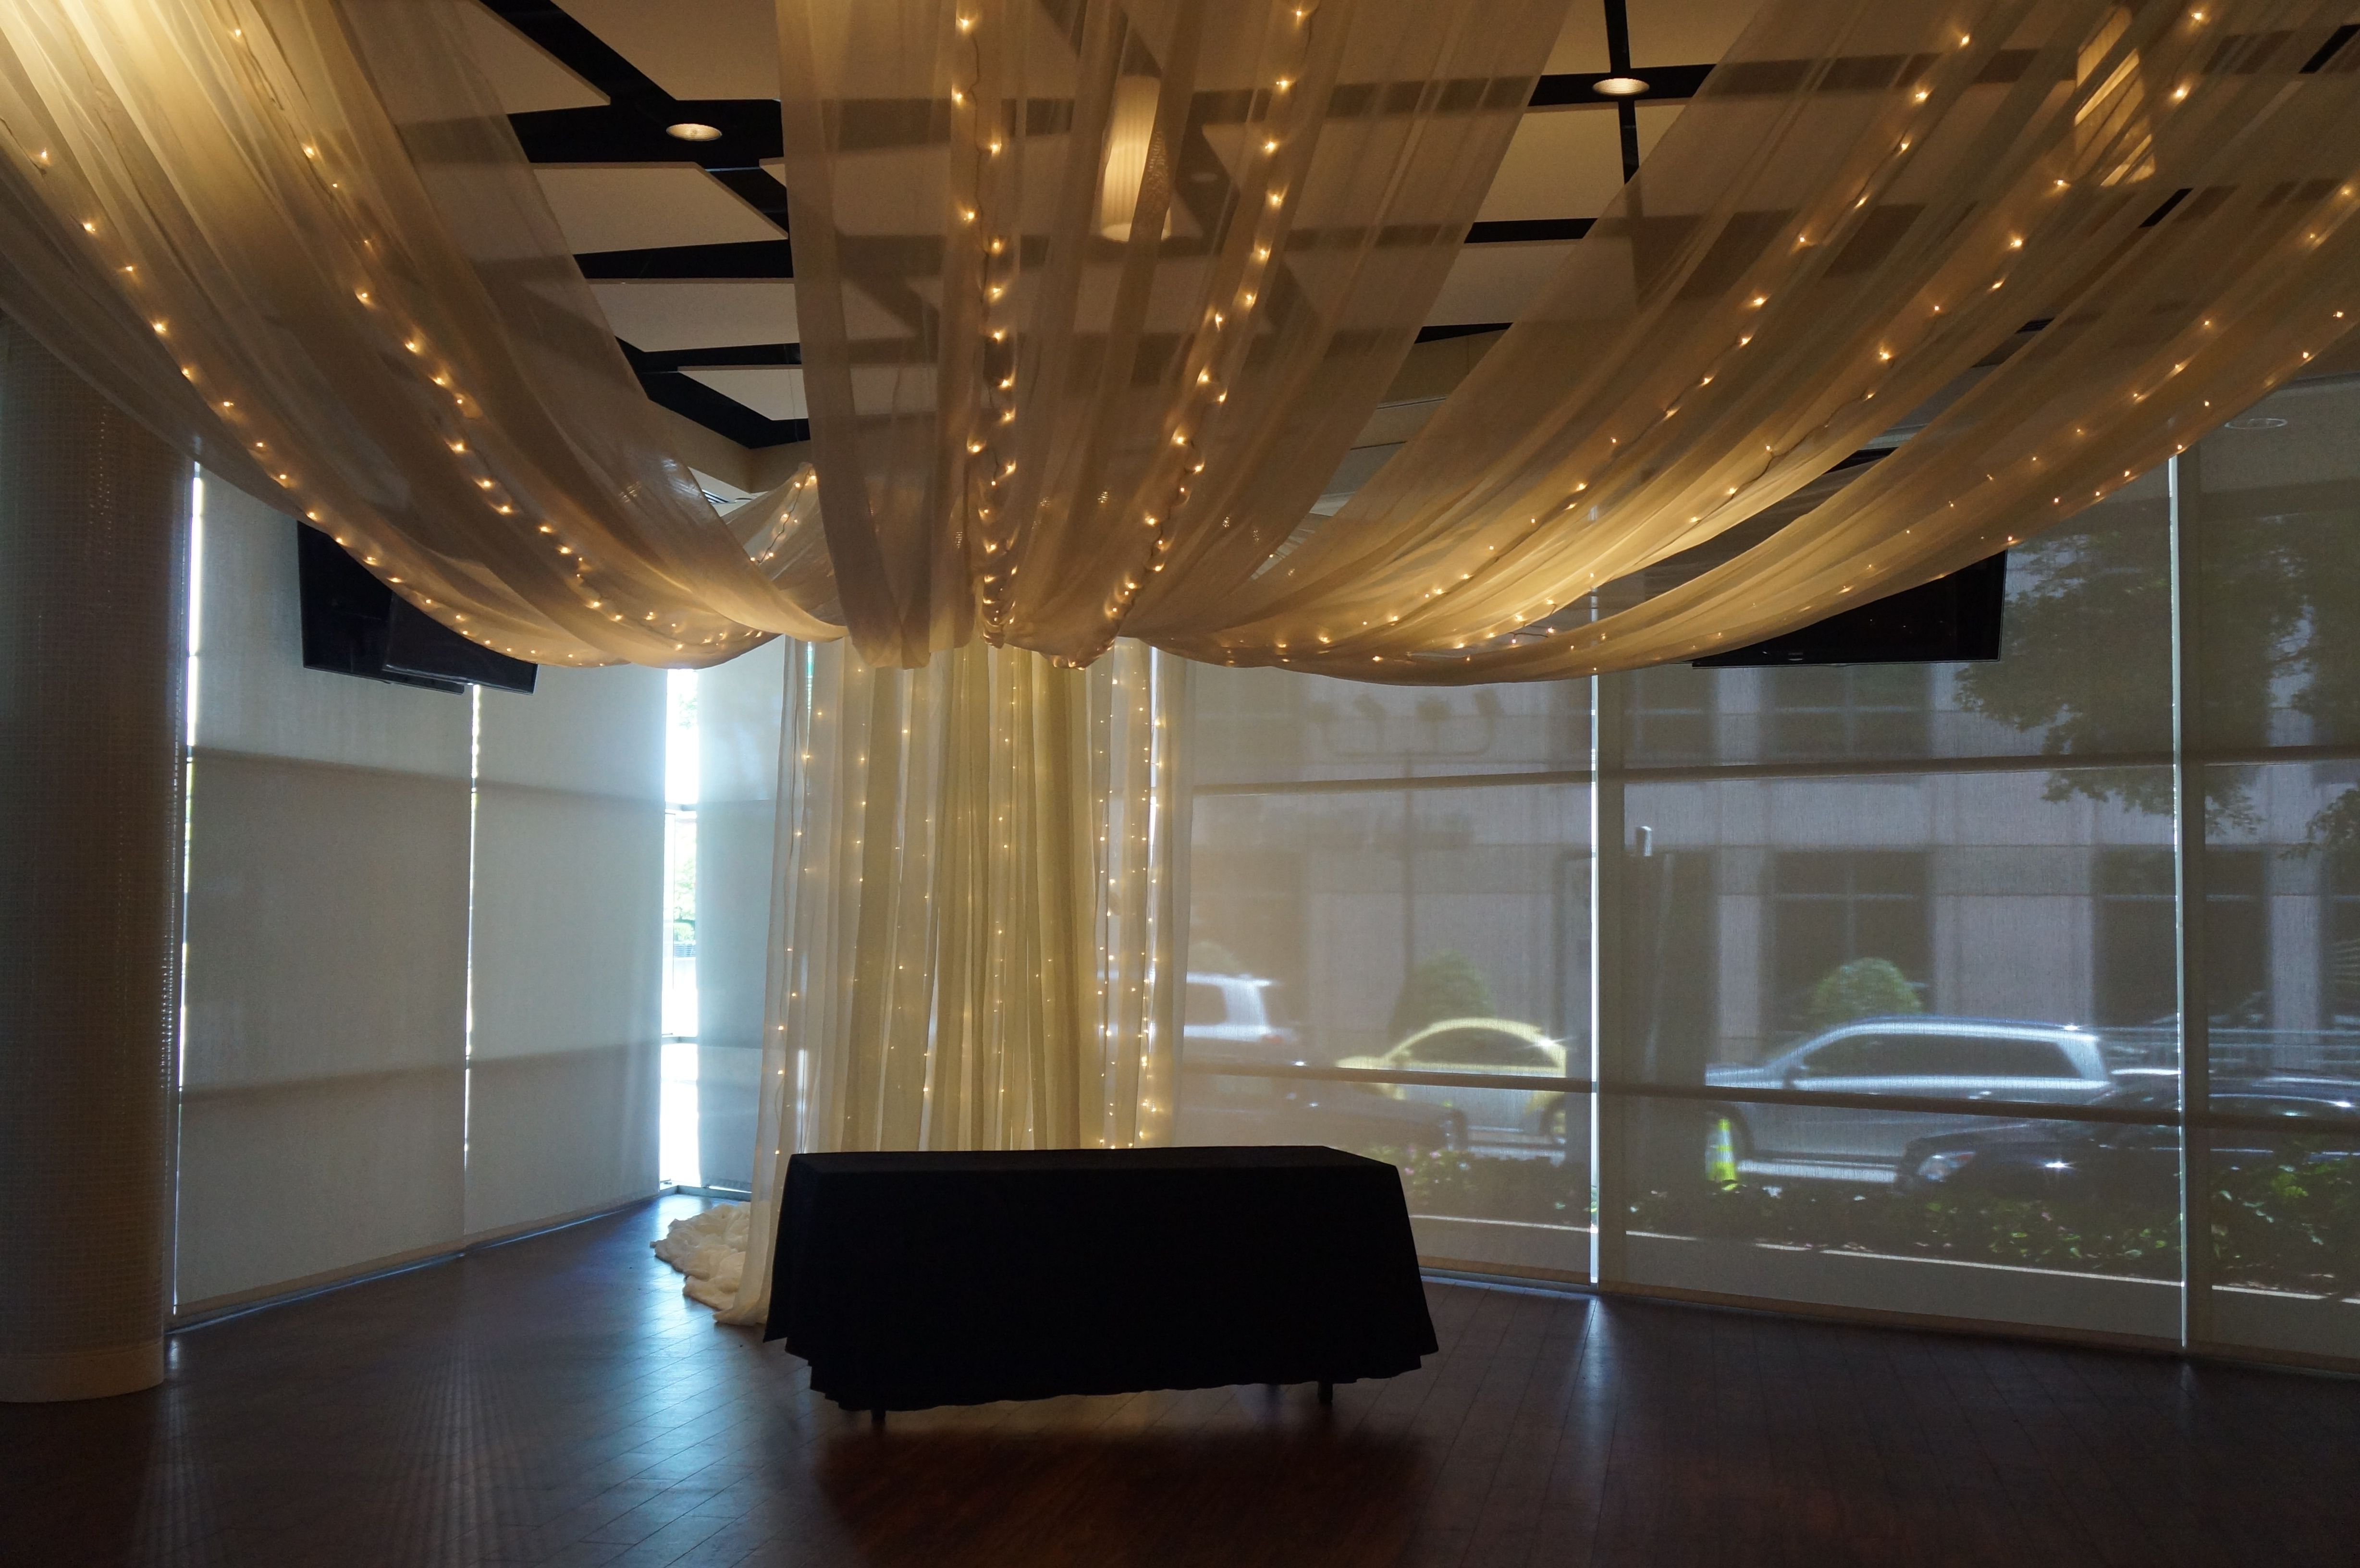 Ceiling Drape And Lighting At Hyatt Regency In Downtown Greenville,